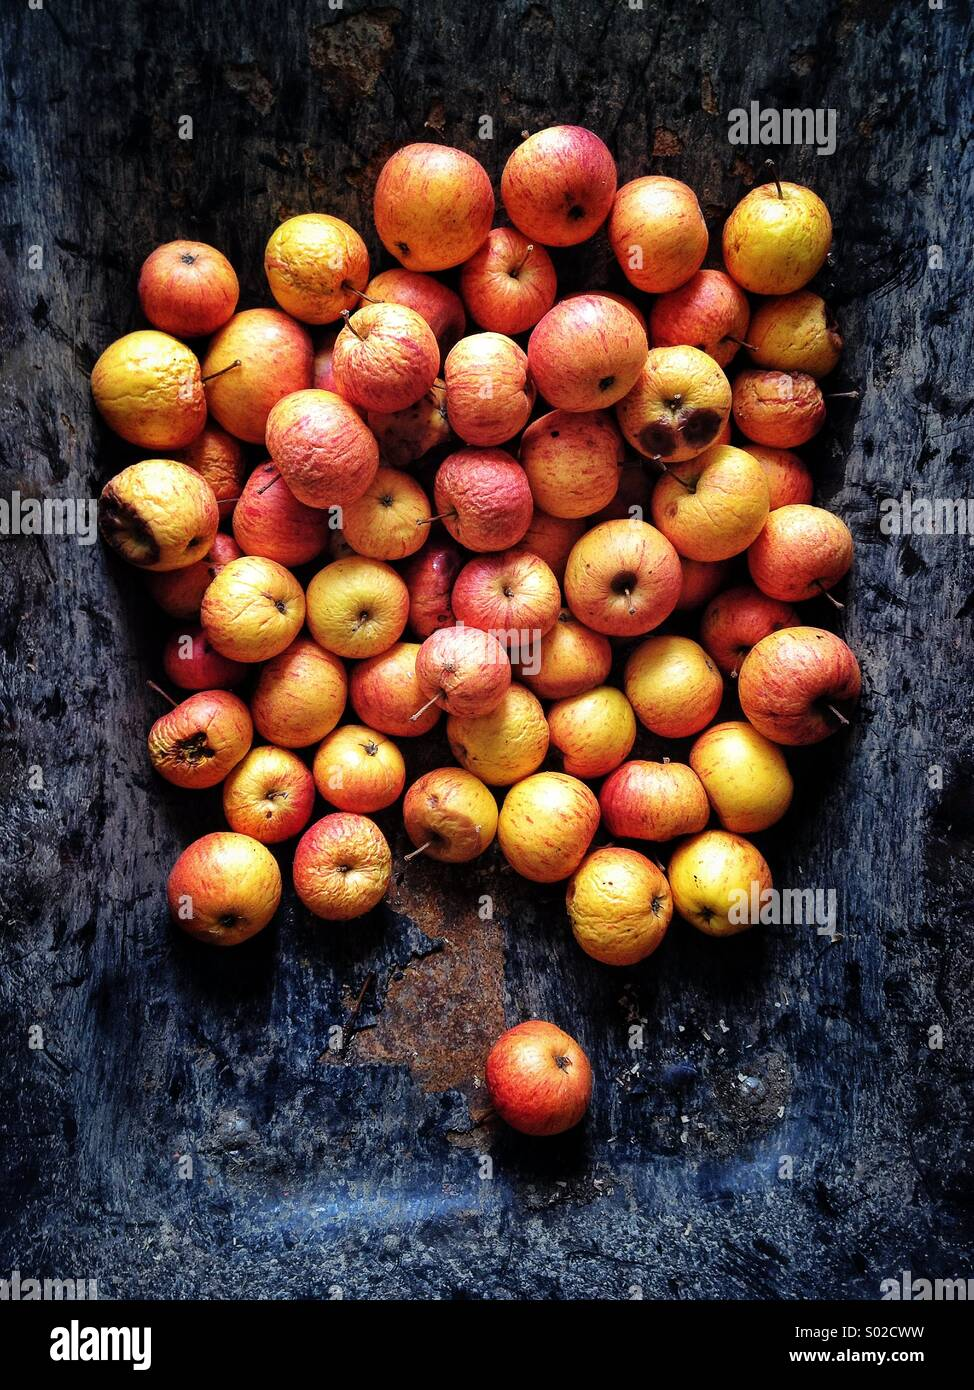 Rotting apples in metal wheelbarrow - Stock Image